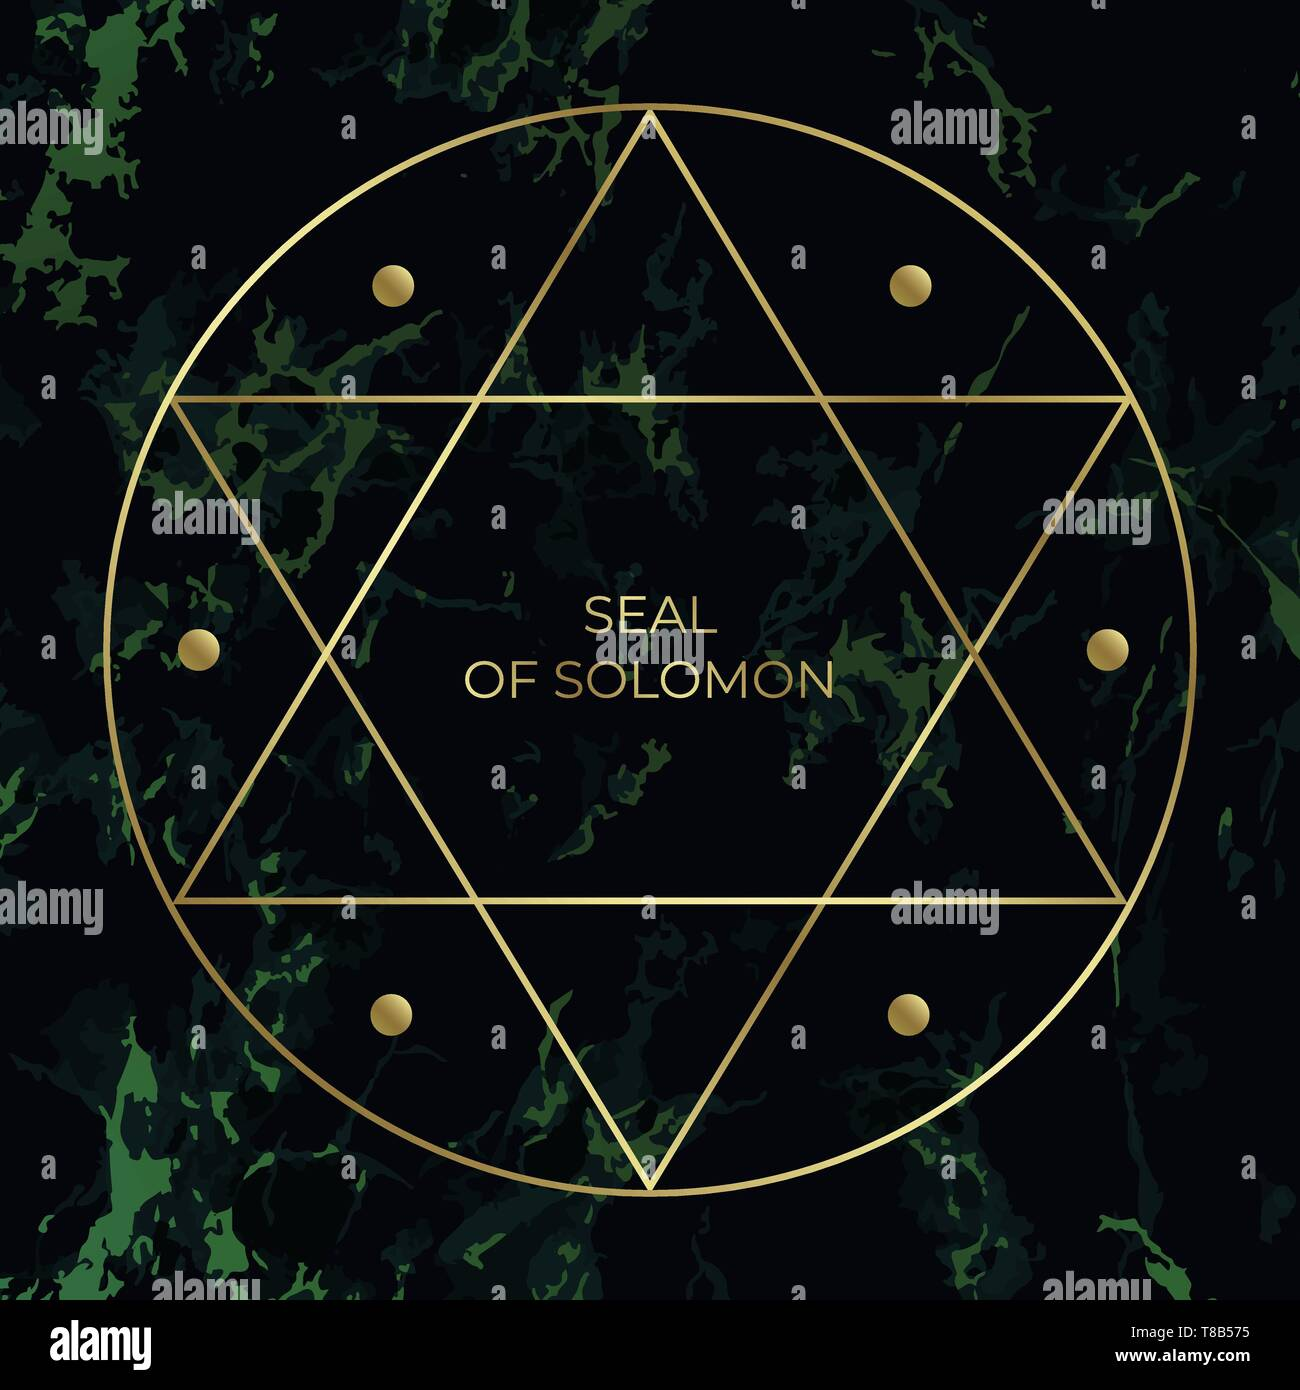 Star of David or the Seal of Solomon. Jewish Sign. - Stock Vector